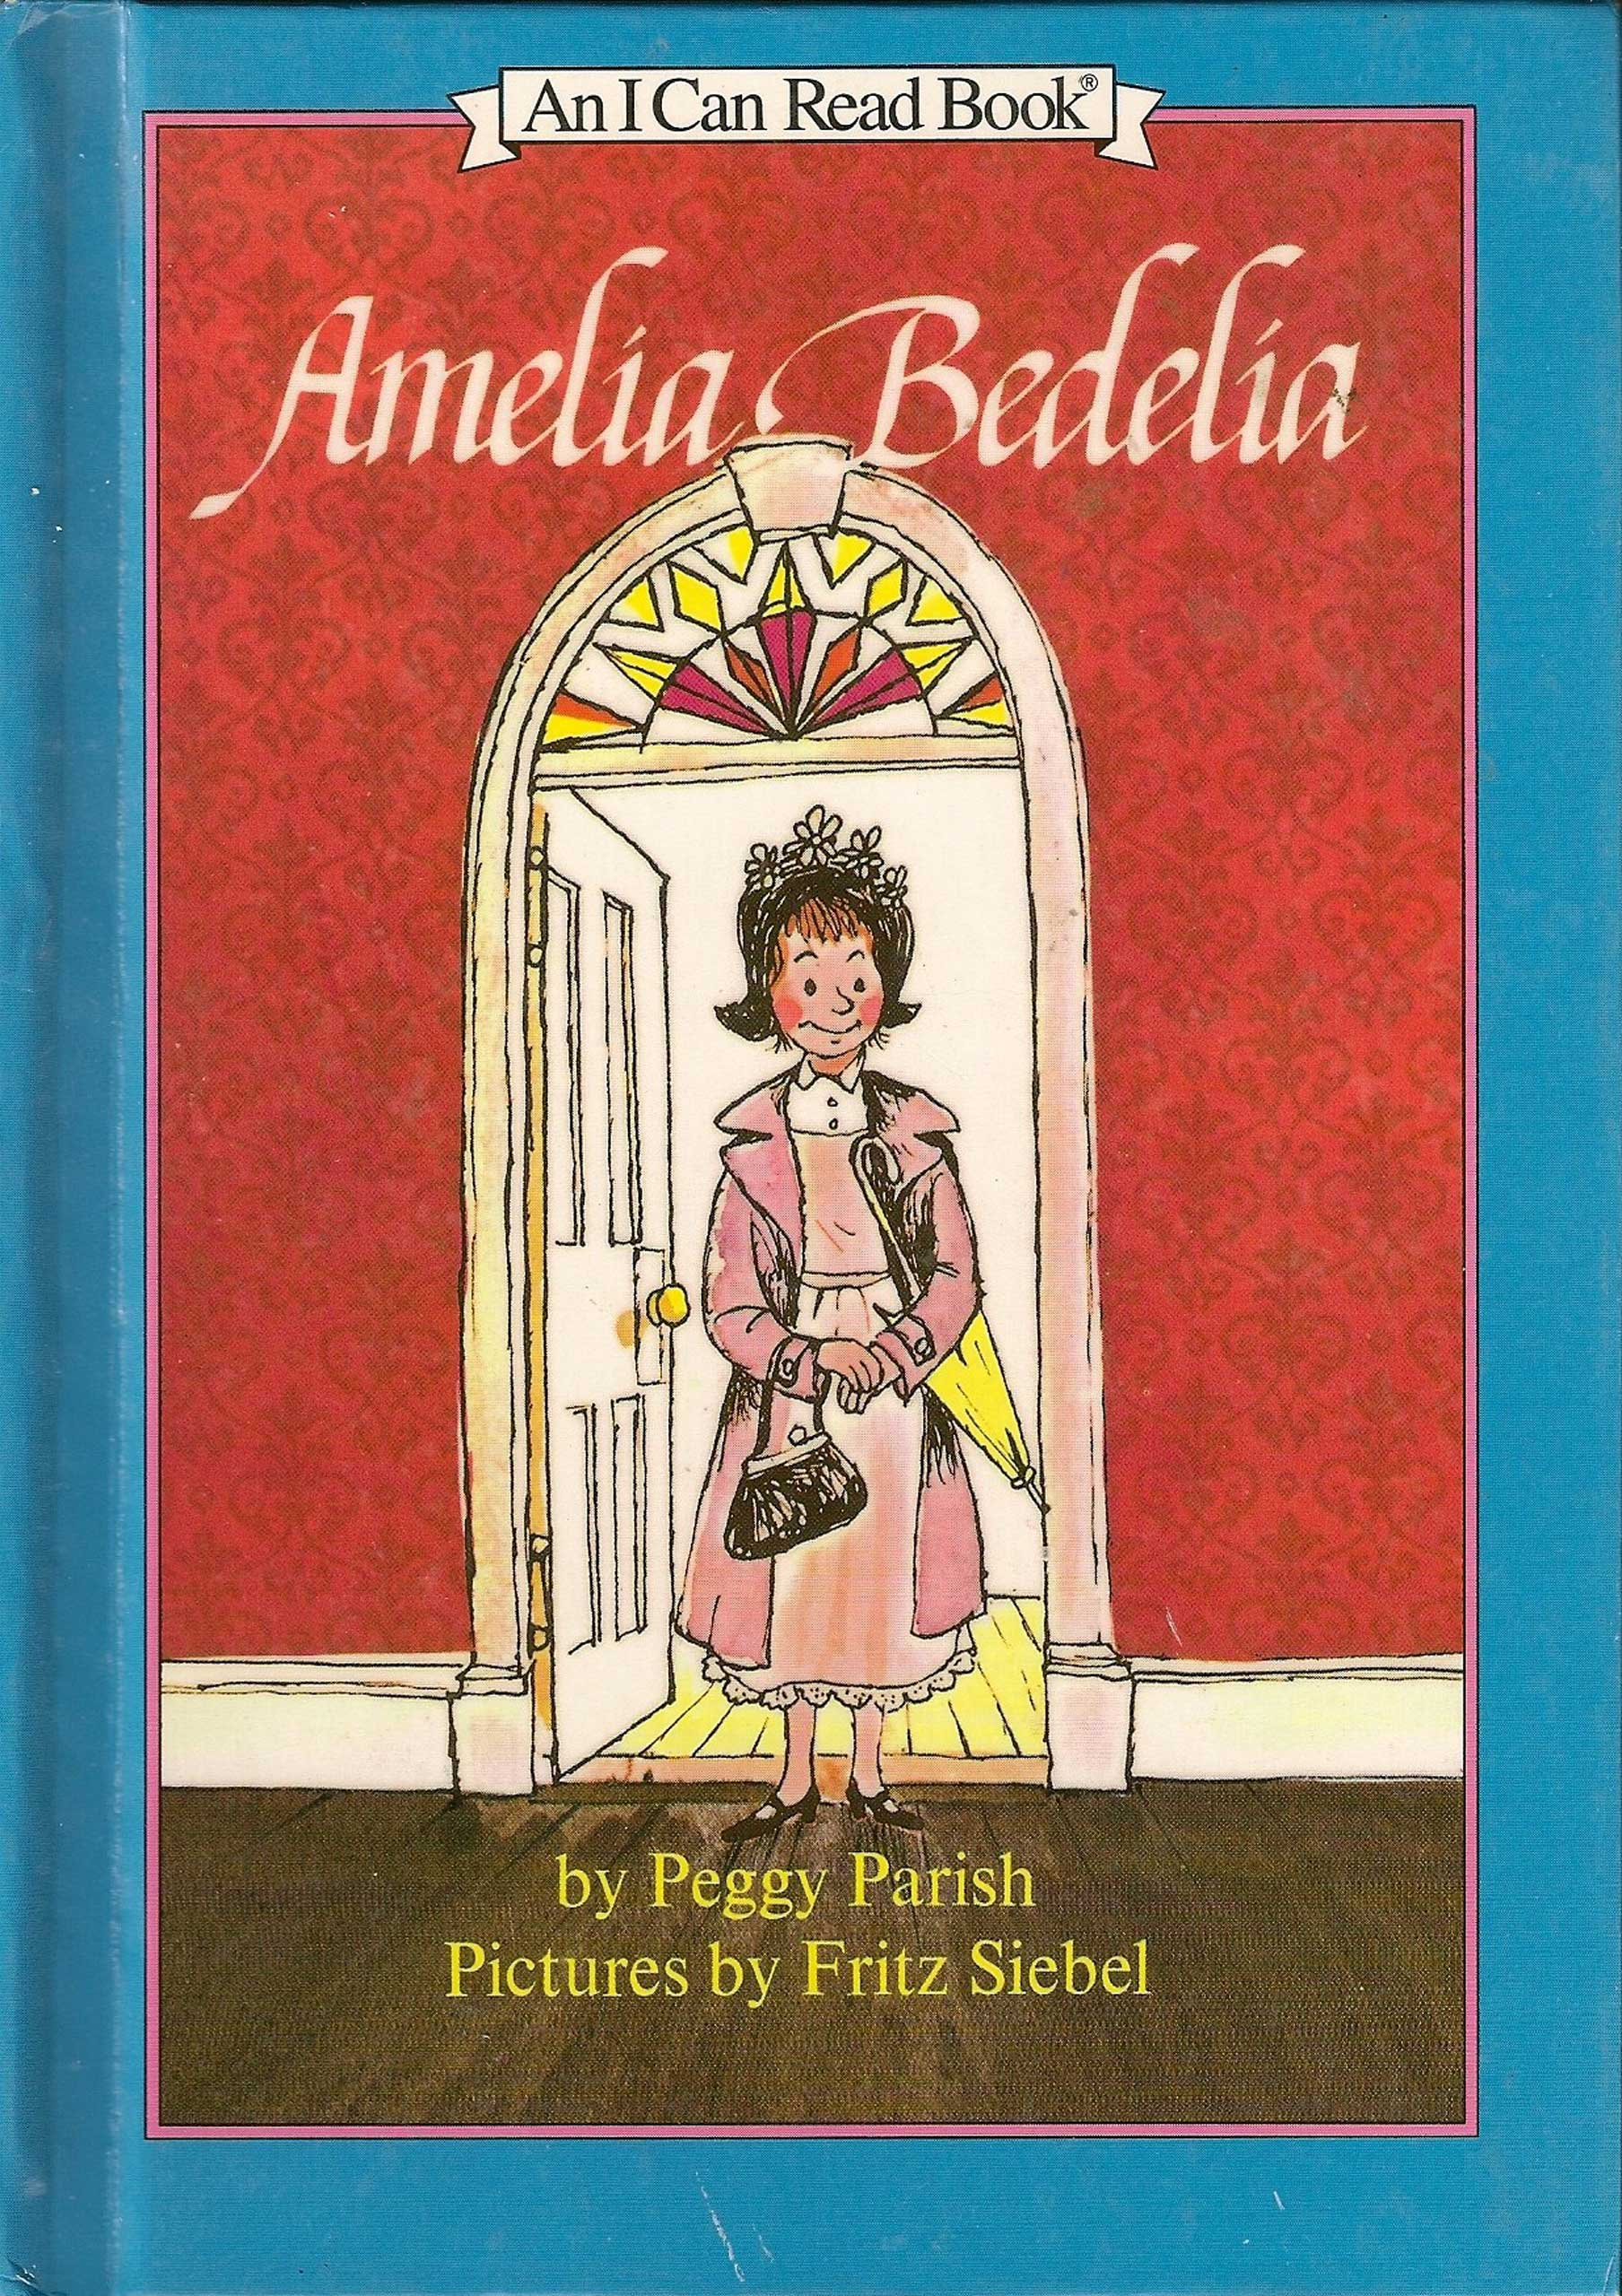 Amelia Bedelia, by Peggy Parish, illustrations by Fritz Siebel.                                                                                                                            A highly literal housekeeper charmingly misinterprets everyday language.                                                                                                                            Buy now: Amelia Bedelia